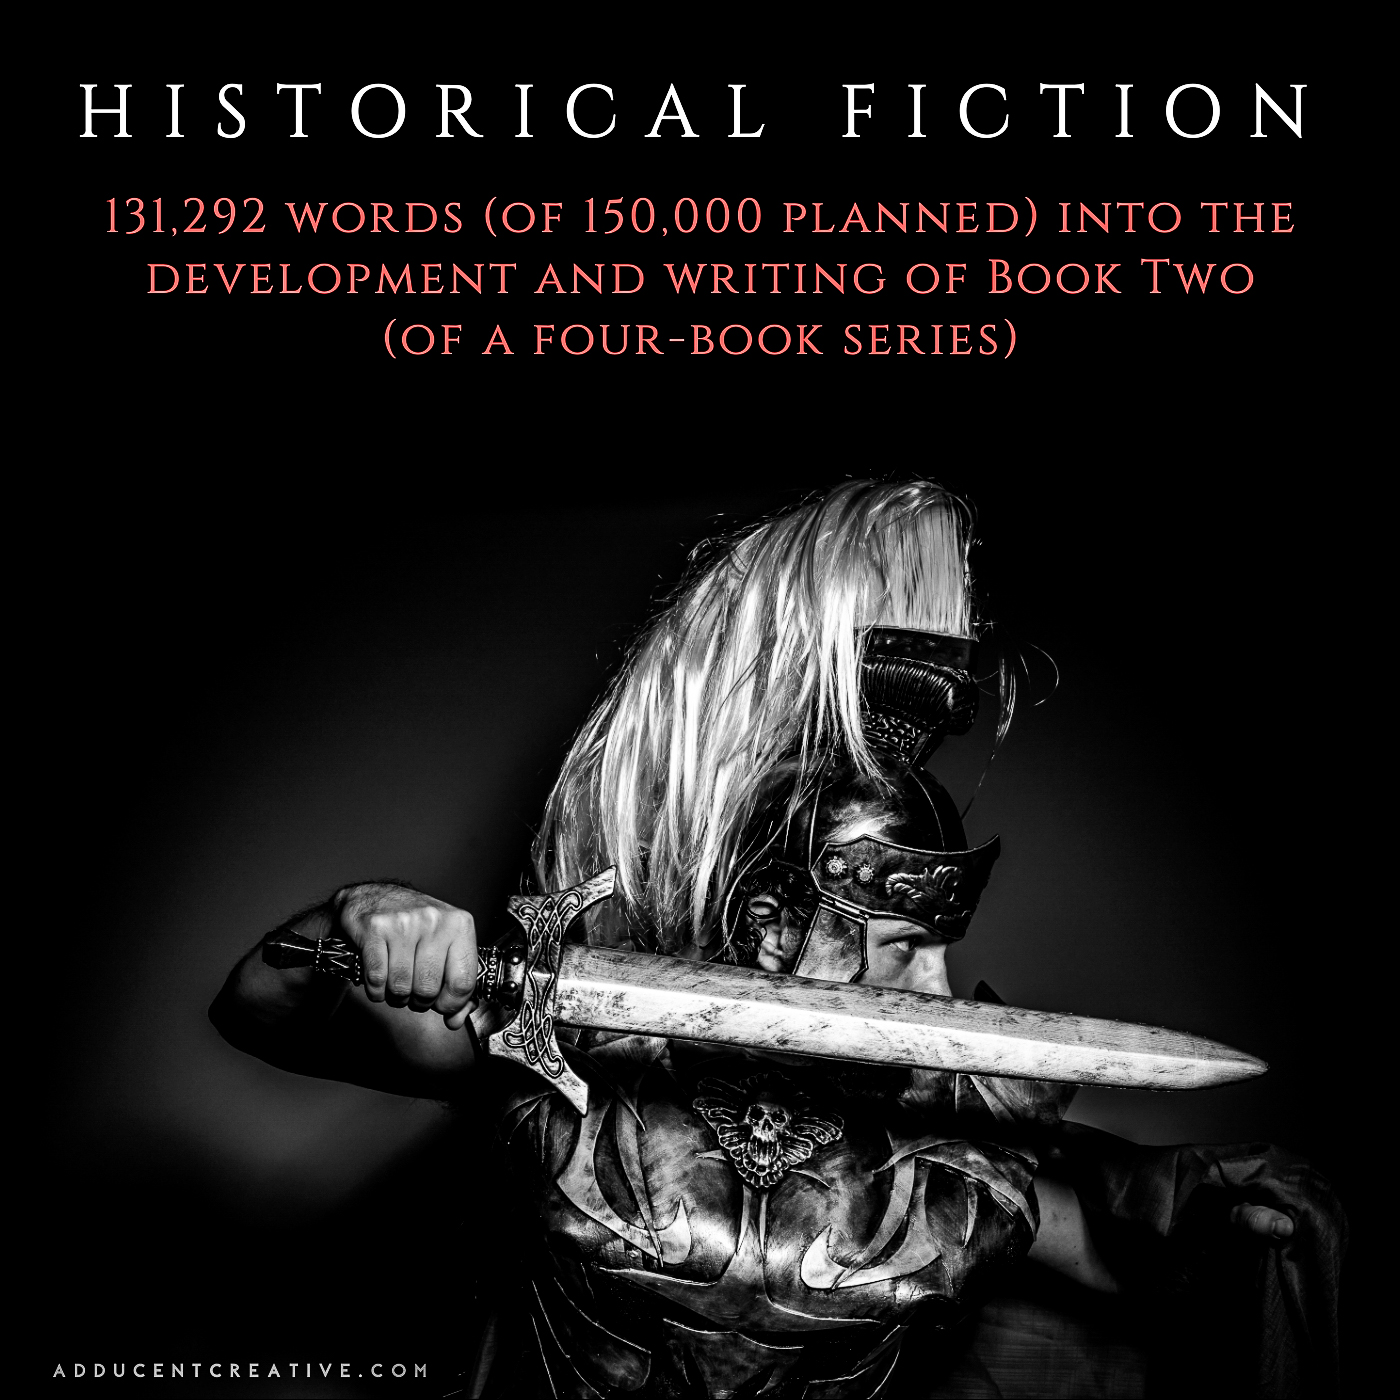 Historical Fiction at the 131,292-word mark